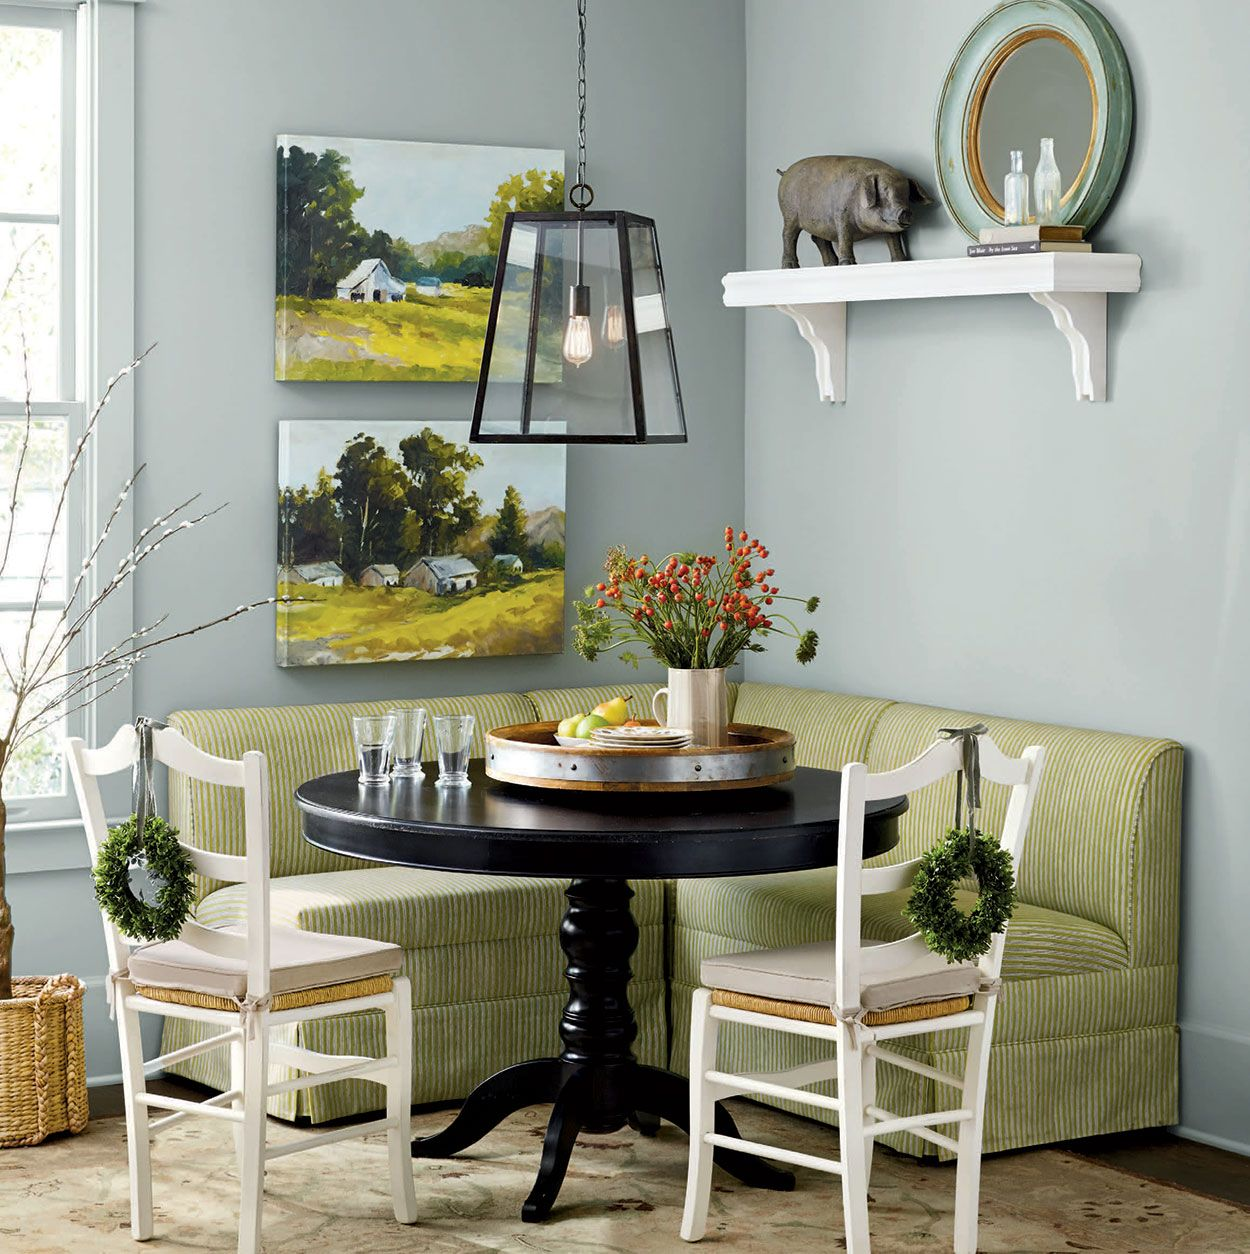 21 Corner Dining Sets Designs Decorating Ideas: Dining Room Decorating Ideas In 2020